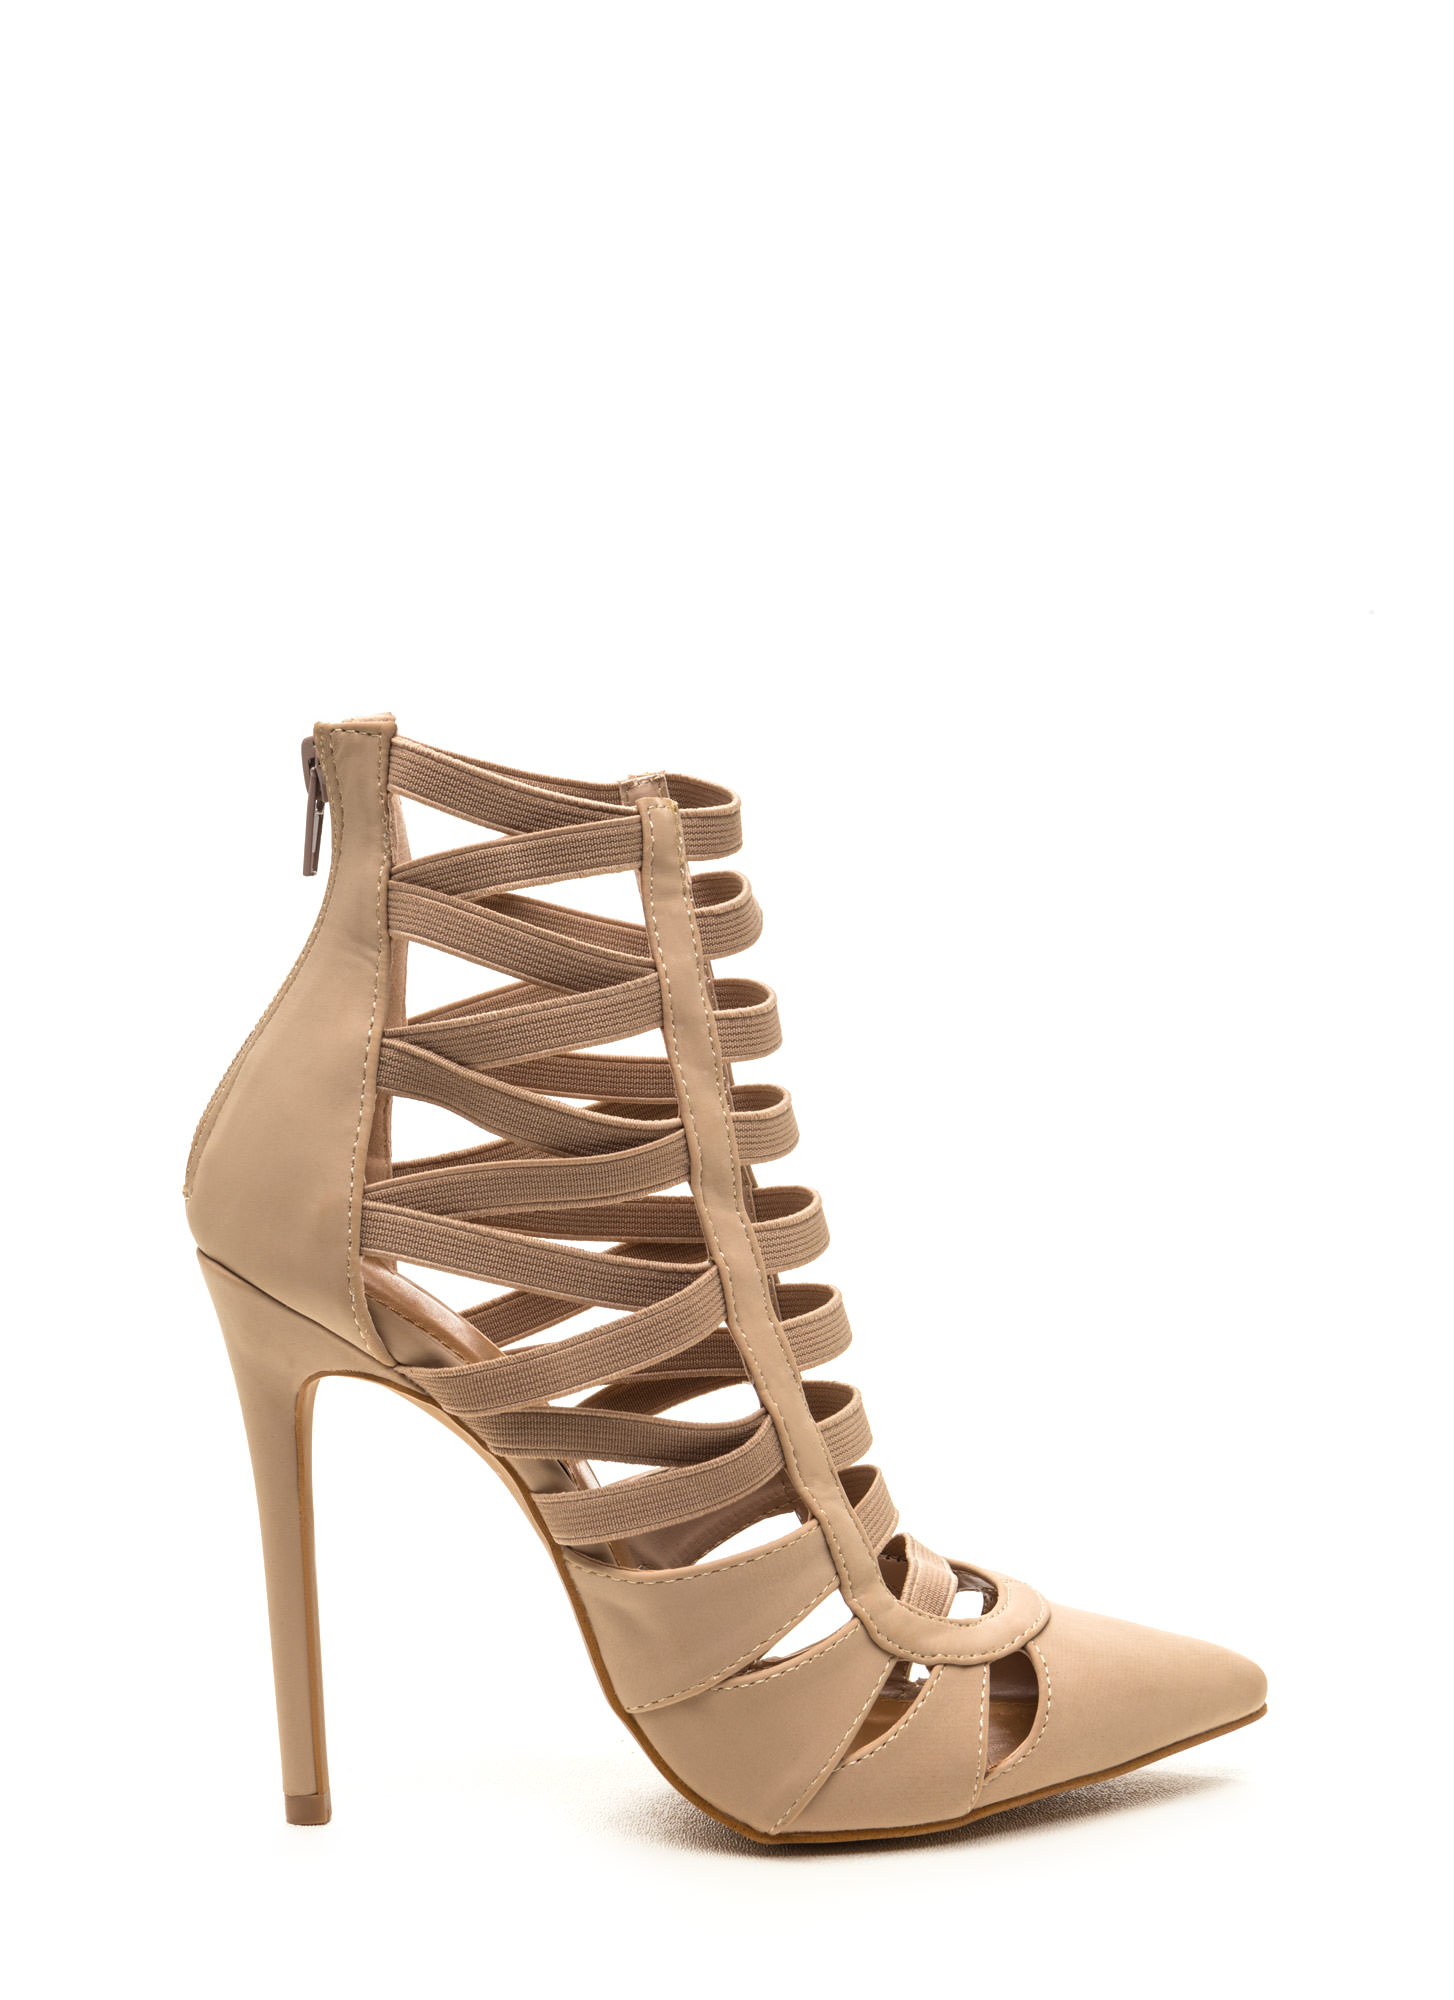 Let's Vent Pointy Caged Cut-Out Heels TAUPE